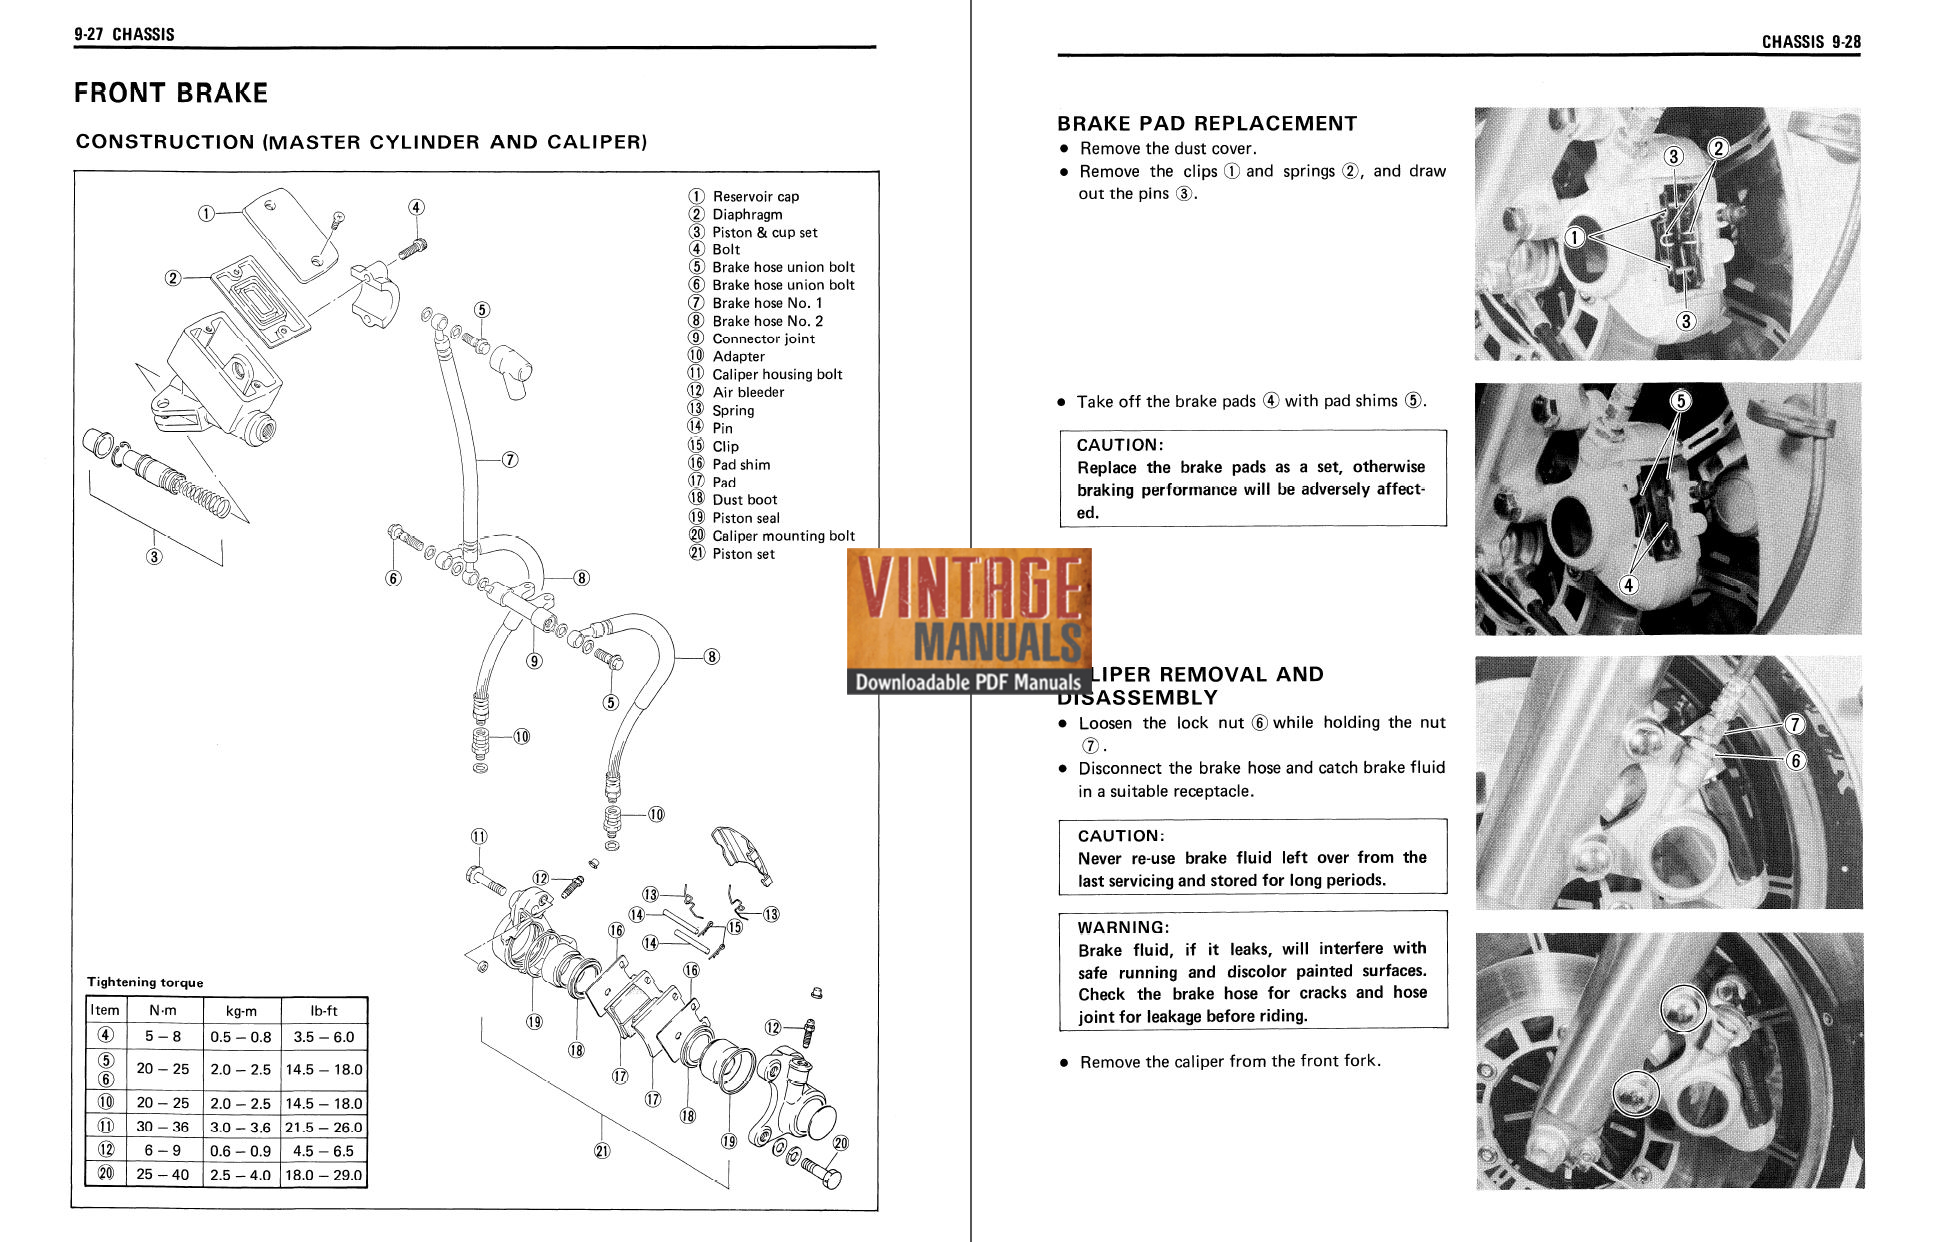 1986-1990 Suzuki GV1400 Cavalcade Motorcycle Repair Manual